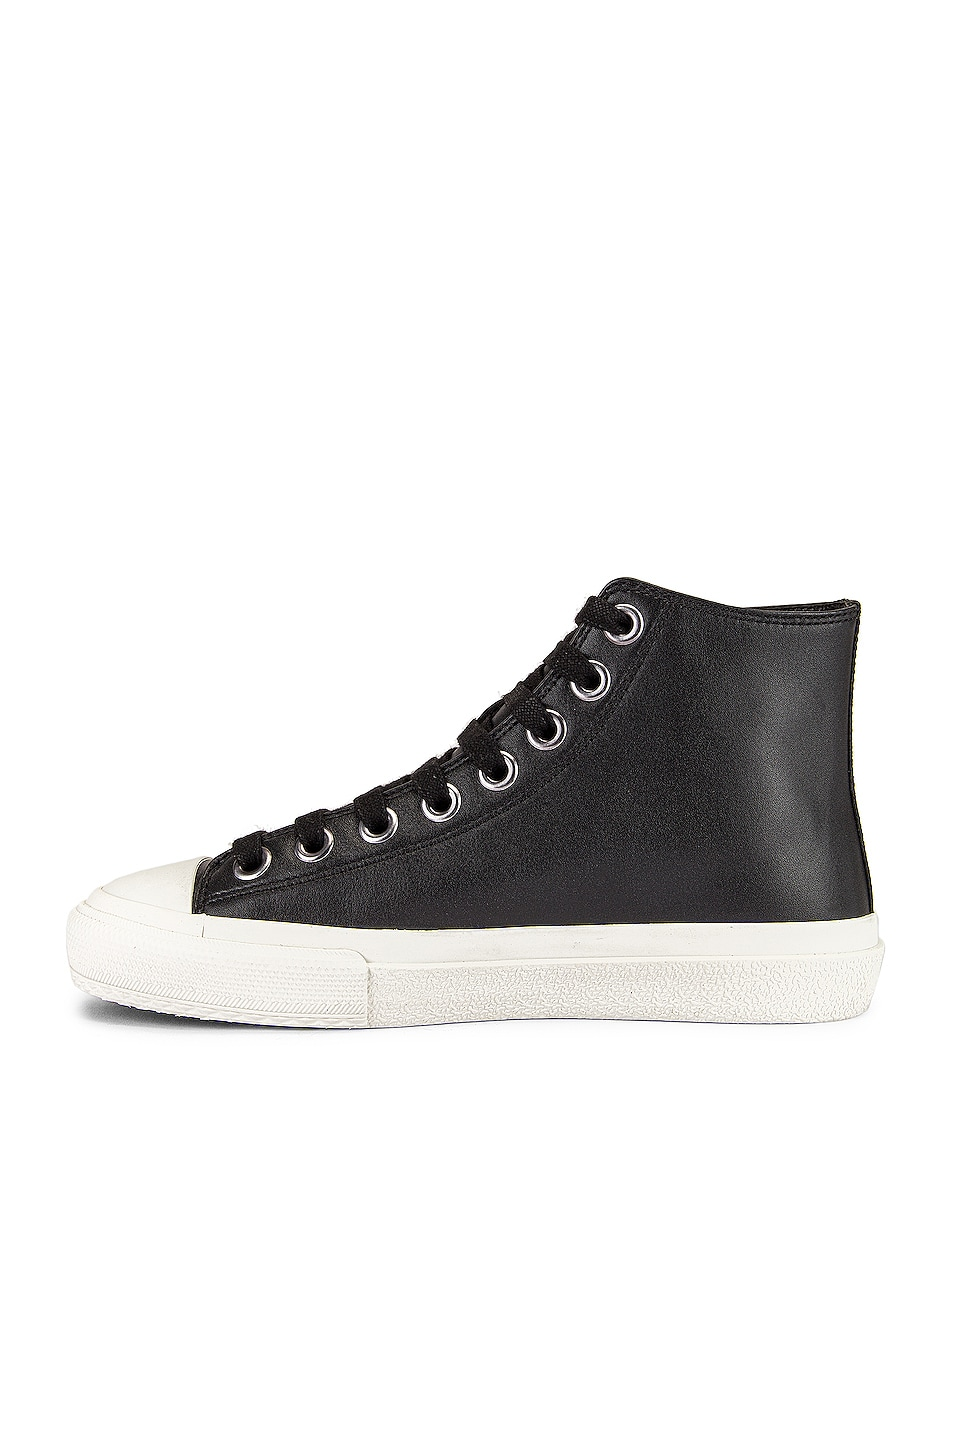 Image 5 of Burberry Larkhall Logo High Top Sneakers in Black